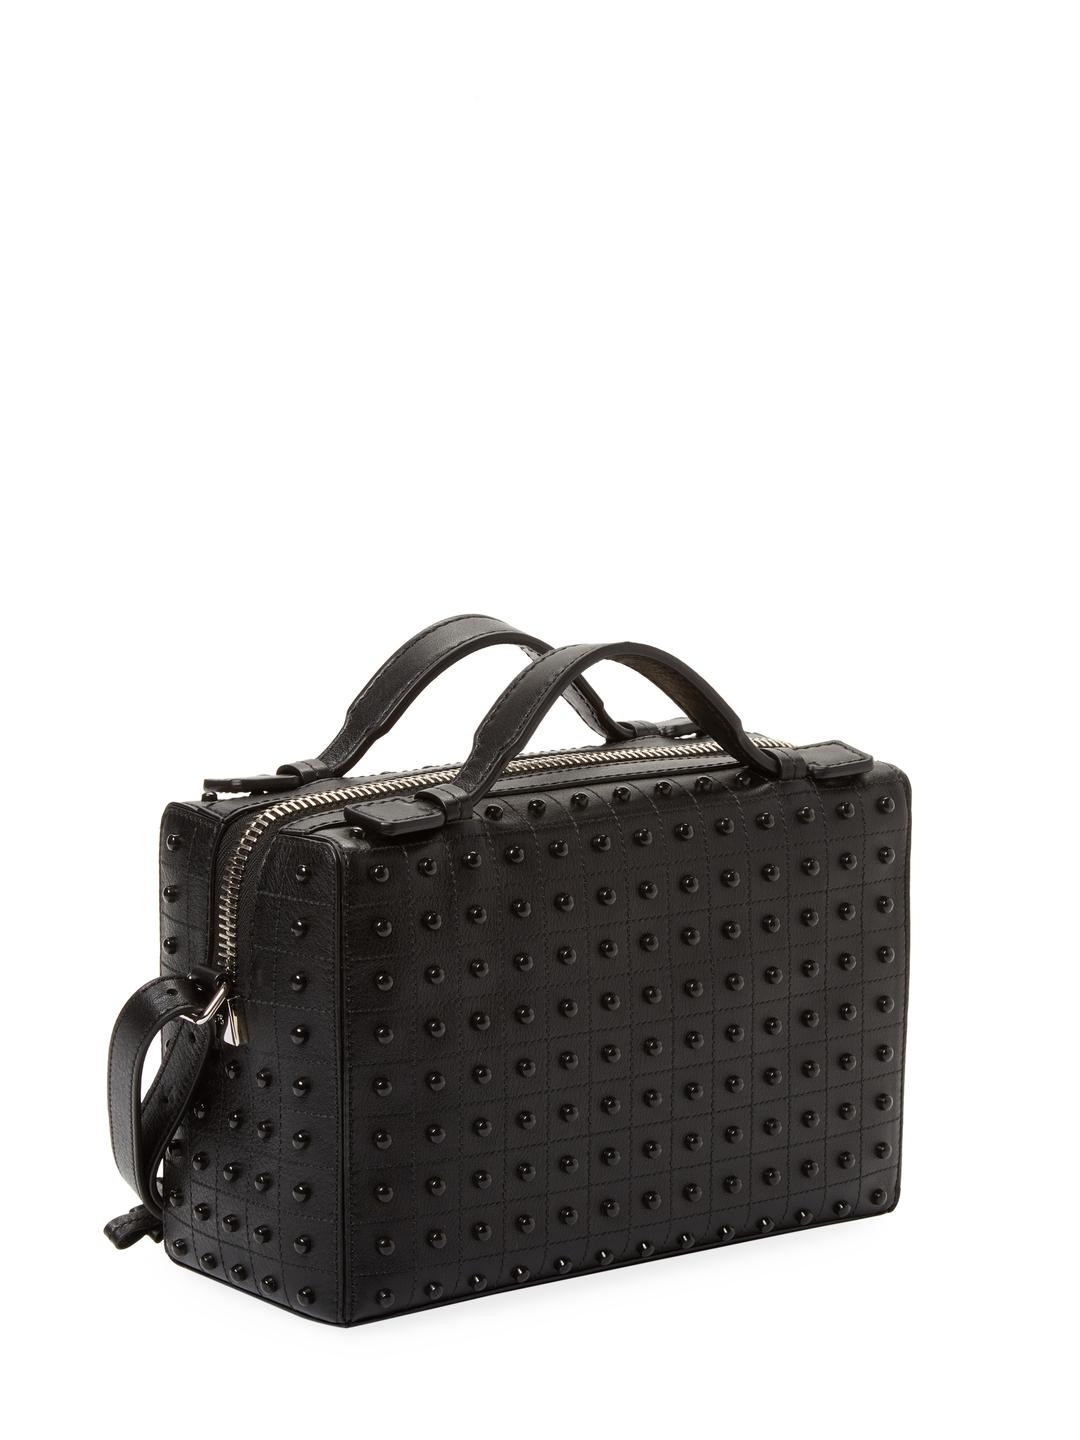 452b66343ebe Lyst - Tod s Gommino Mini Studded Leather Bag in Black